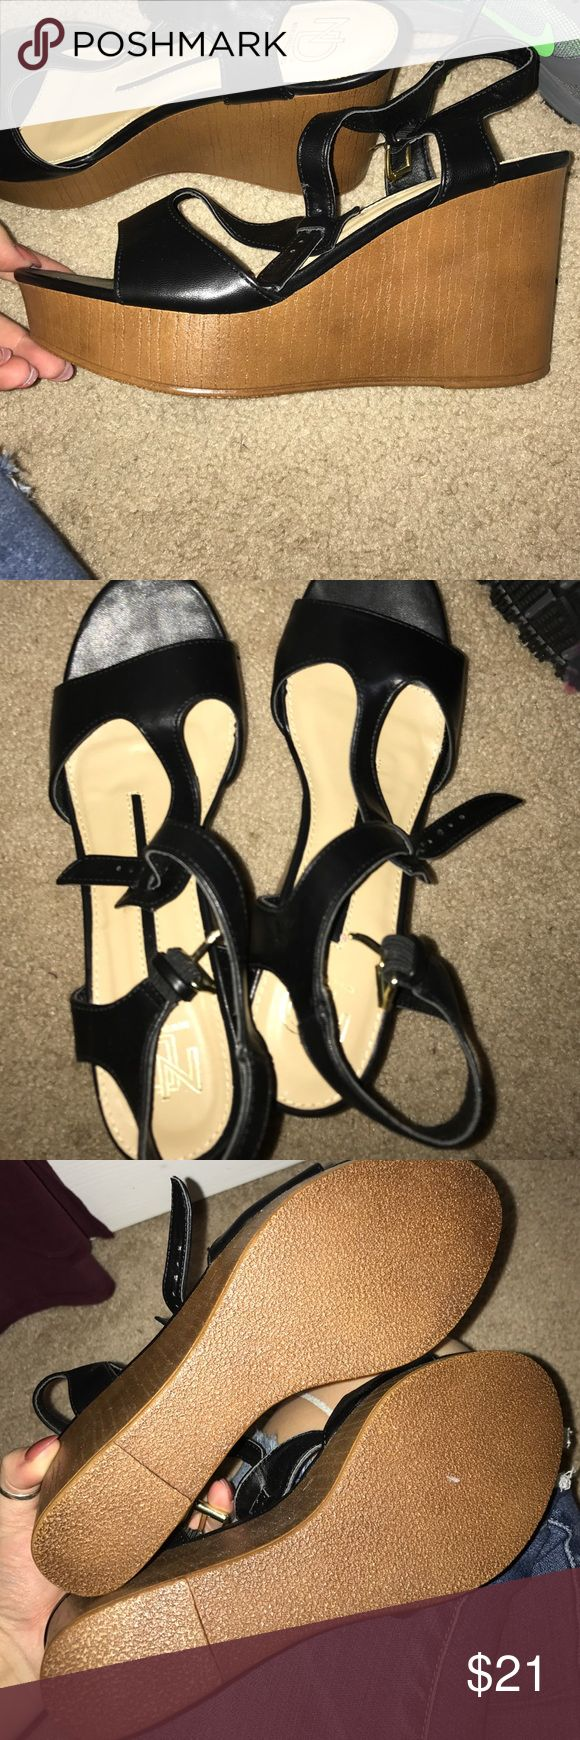 New directions women's high heels Black and white high heels • Women's 8.5 • Never been worn new directions Shoes Heels